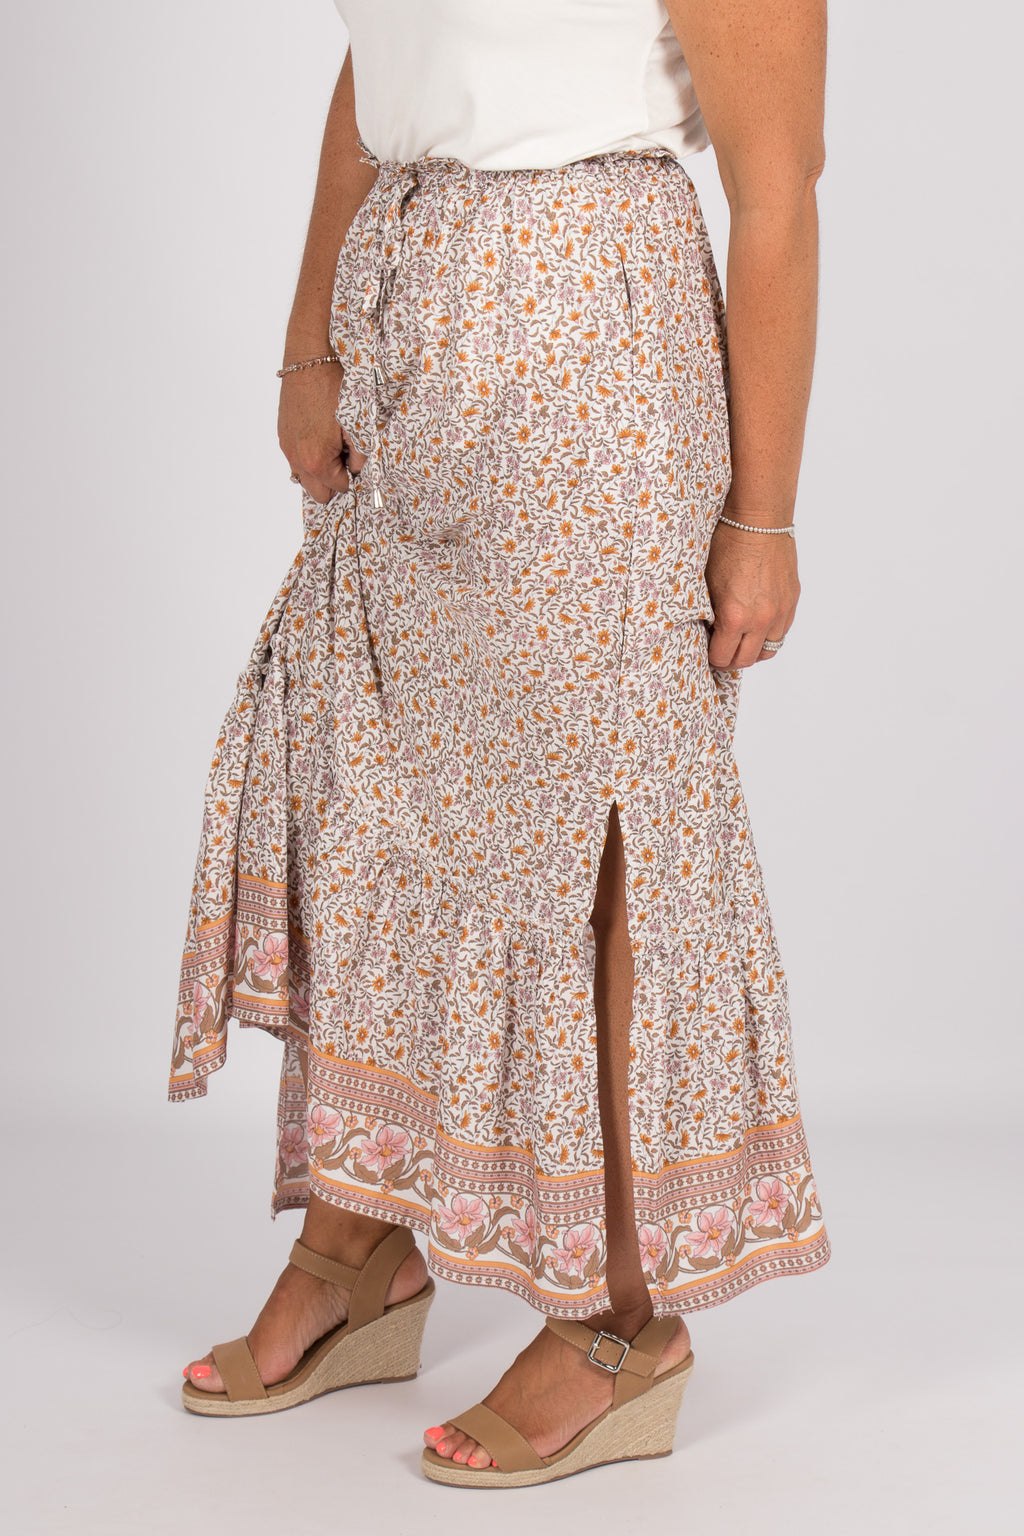 Aberline Maxi Skirt in Pink